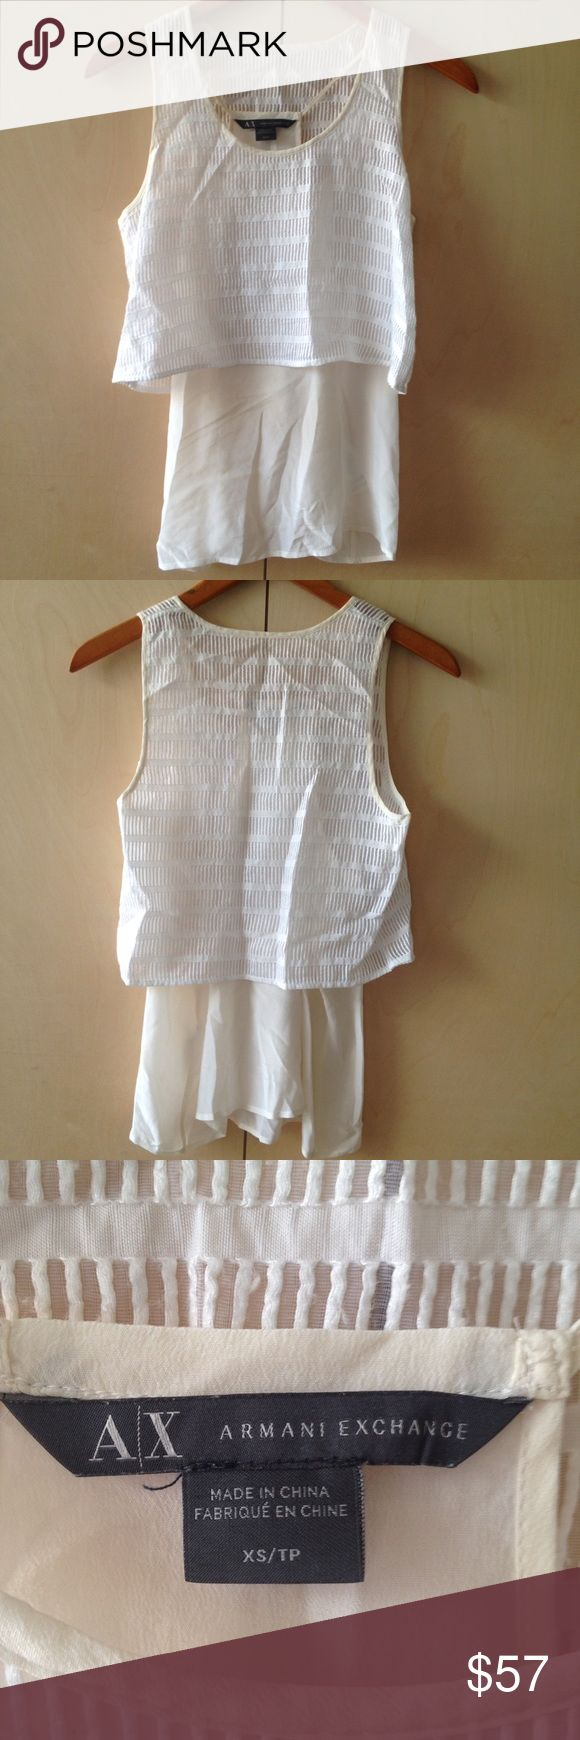 Armani Exchange XS lined flowy crop tank silk Armani Exchange XS lined flowy crop tank mulberry silk white and cream with texture A/X Armani Exchange Tops Tank Tops